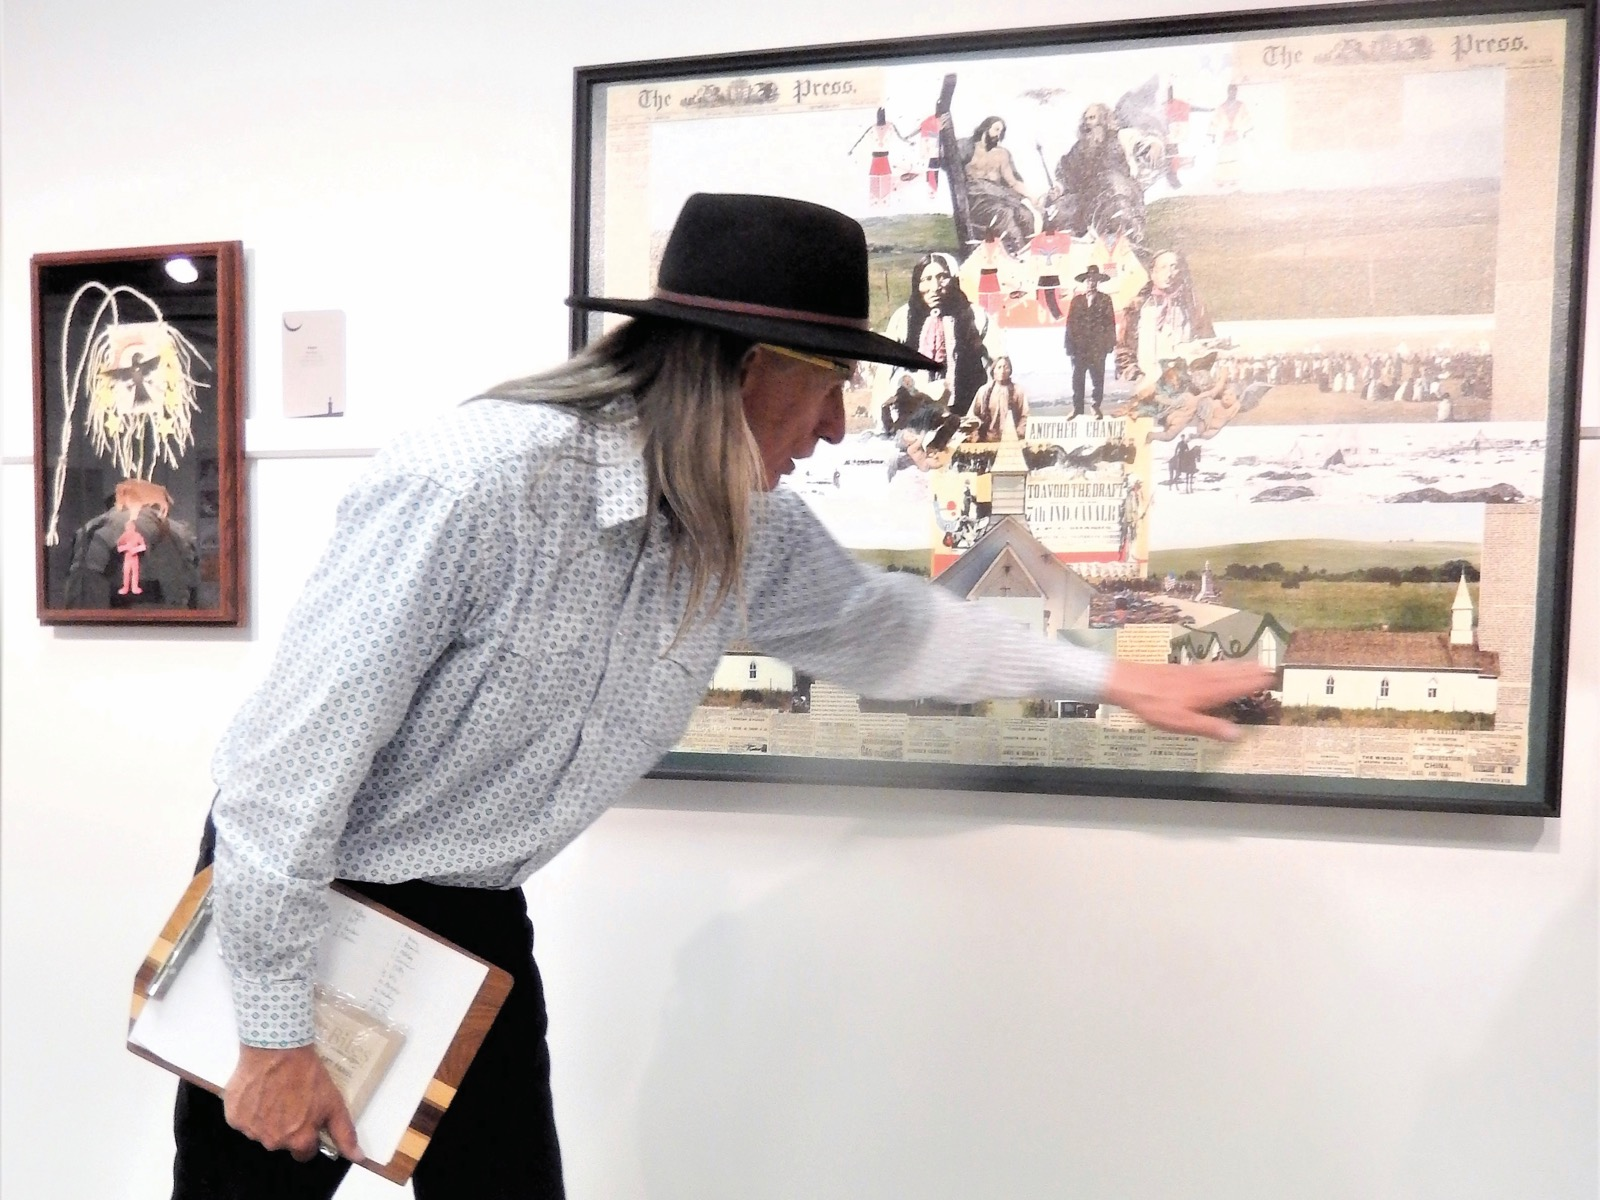 'It was a travesty': Exhibit portrays Wounded Knee Massacre